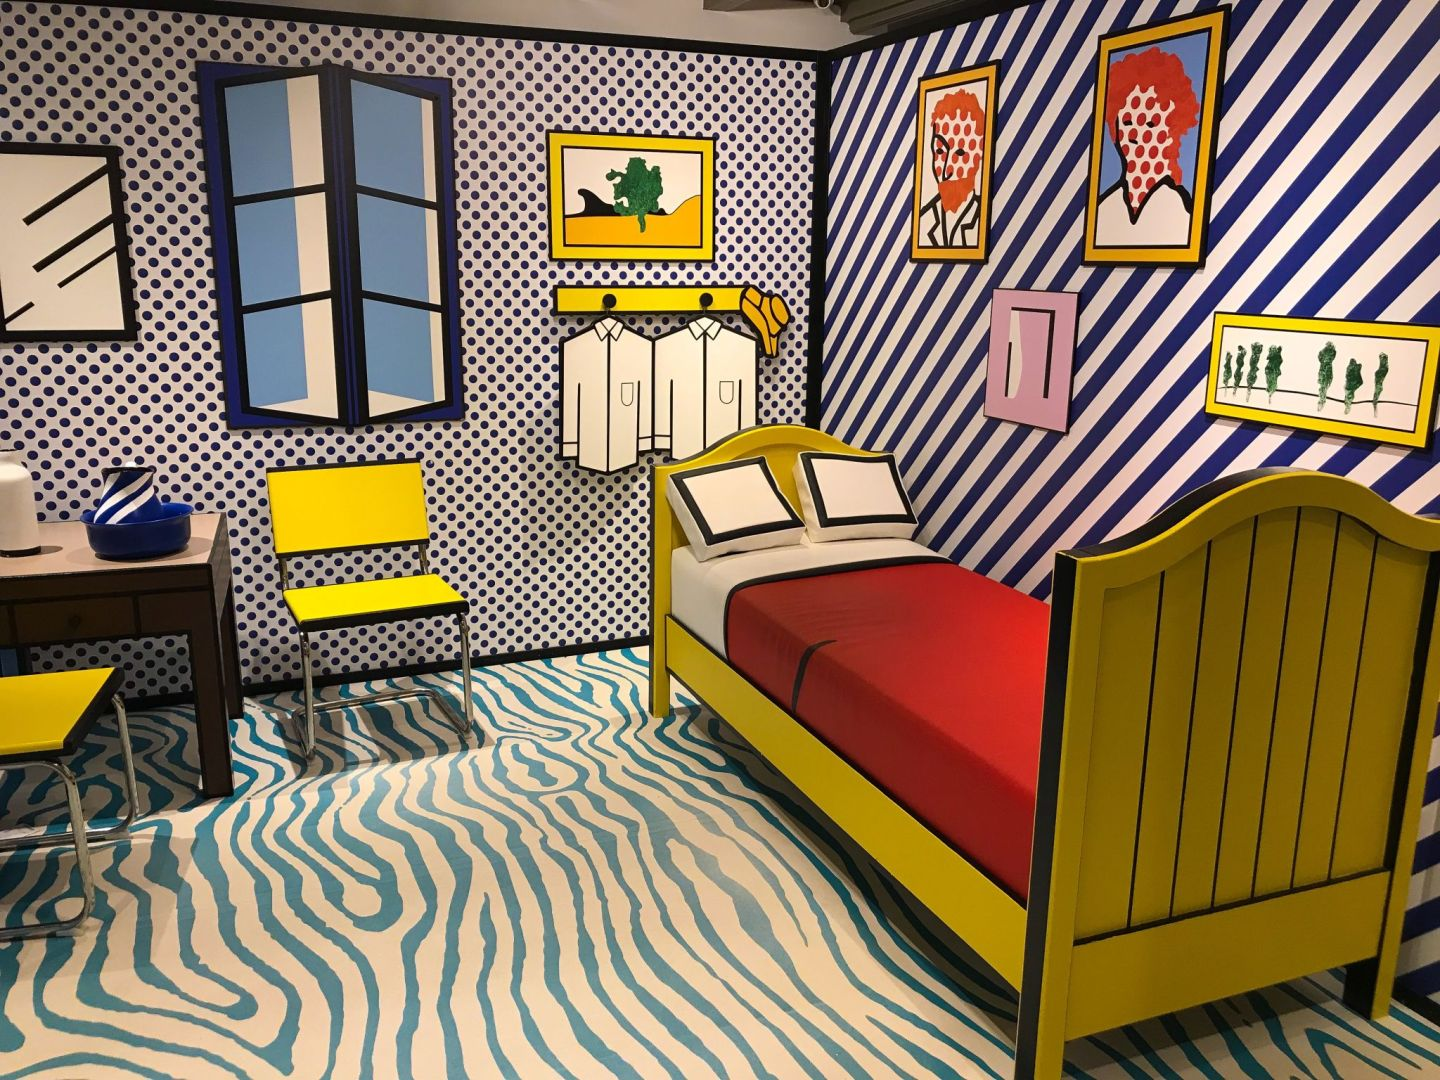 Roy Lichtenstein's version of Van Gogh's The Artist's Room